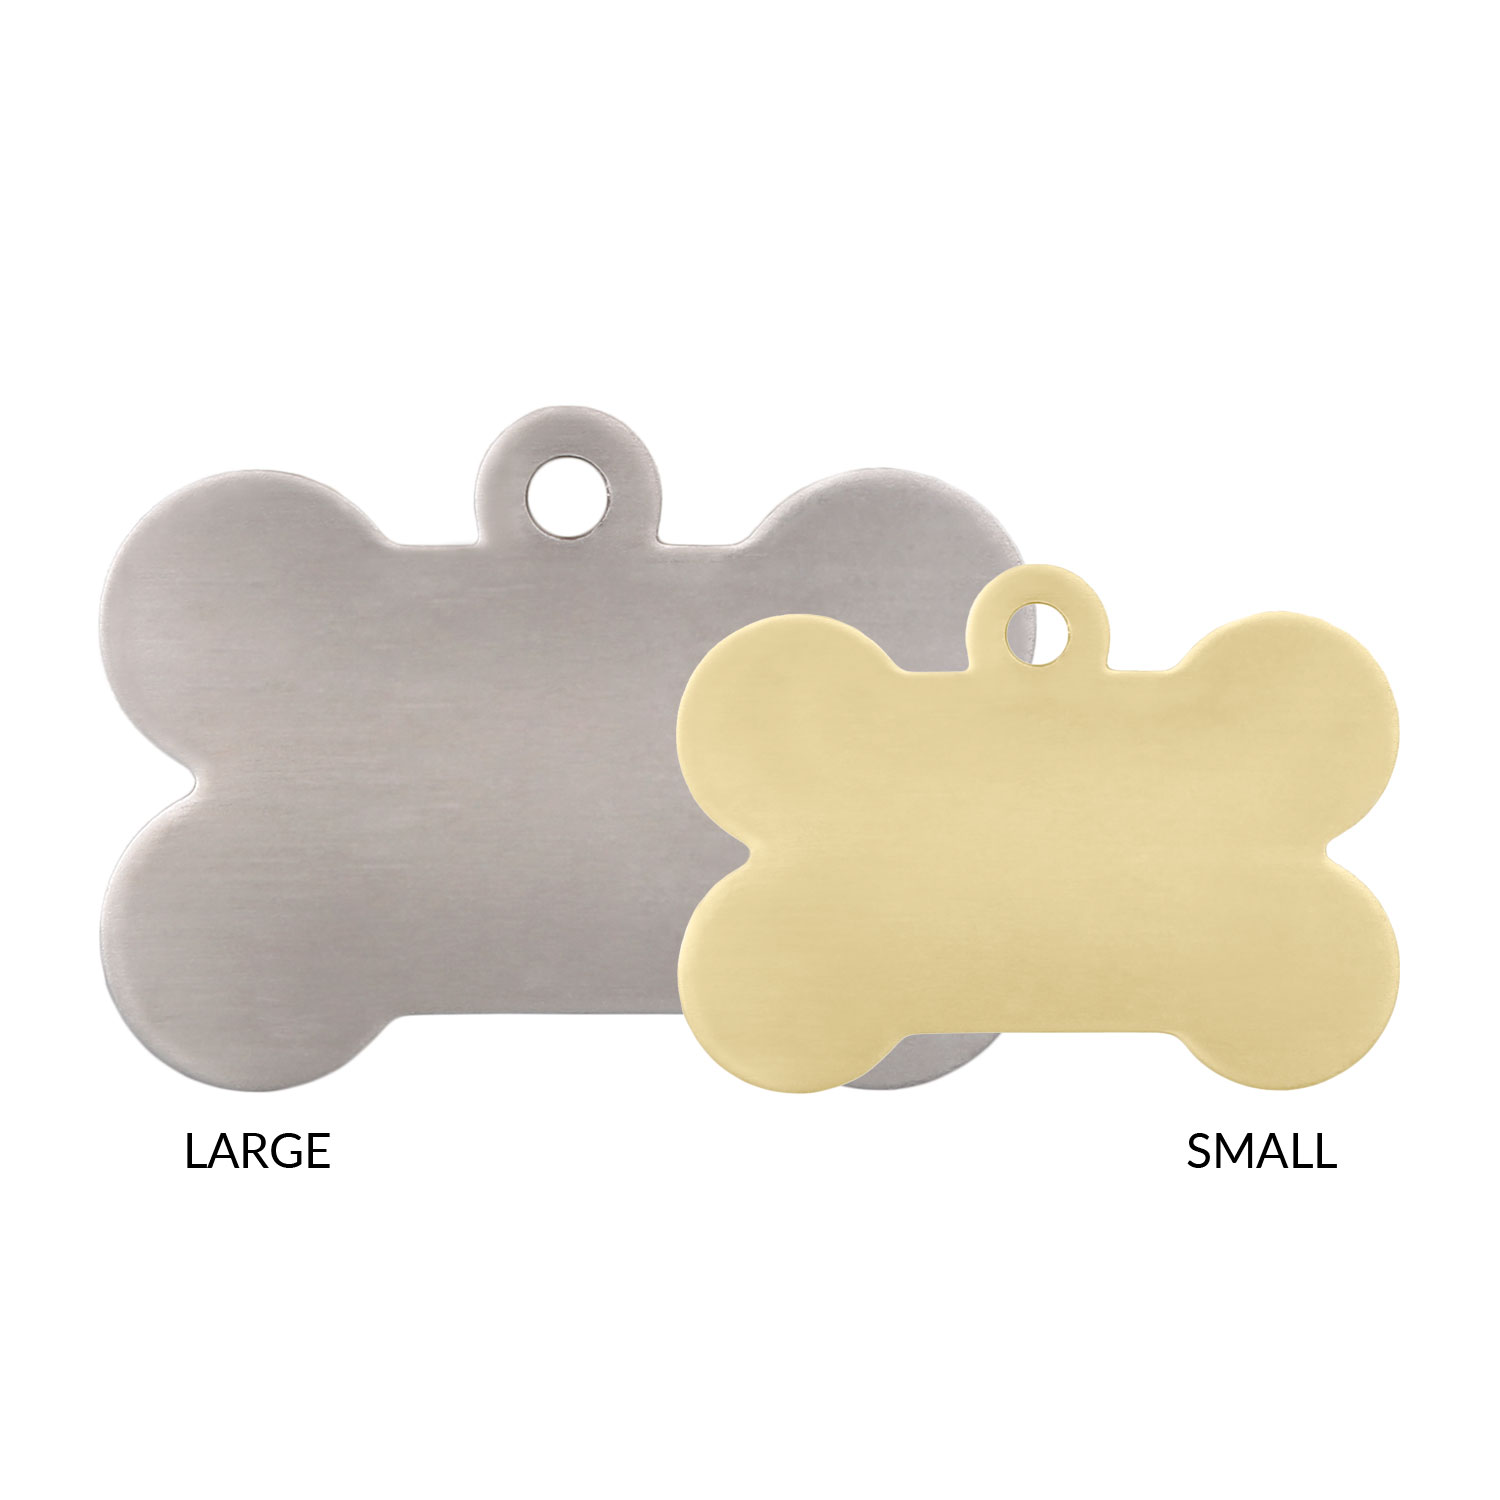 Bone Dog ID Tag Sizes Comparison